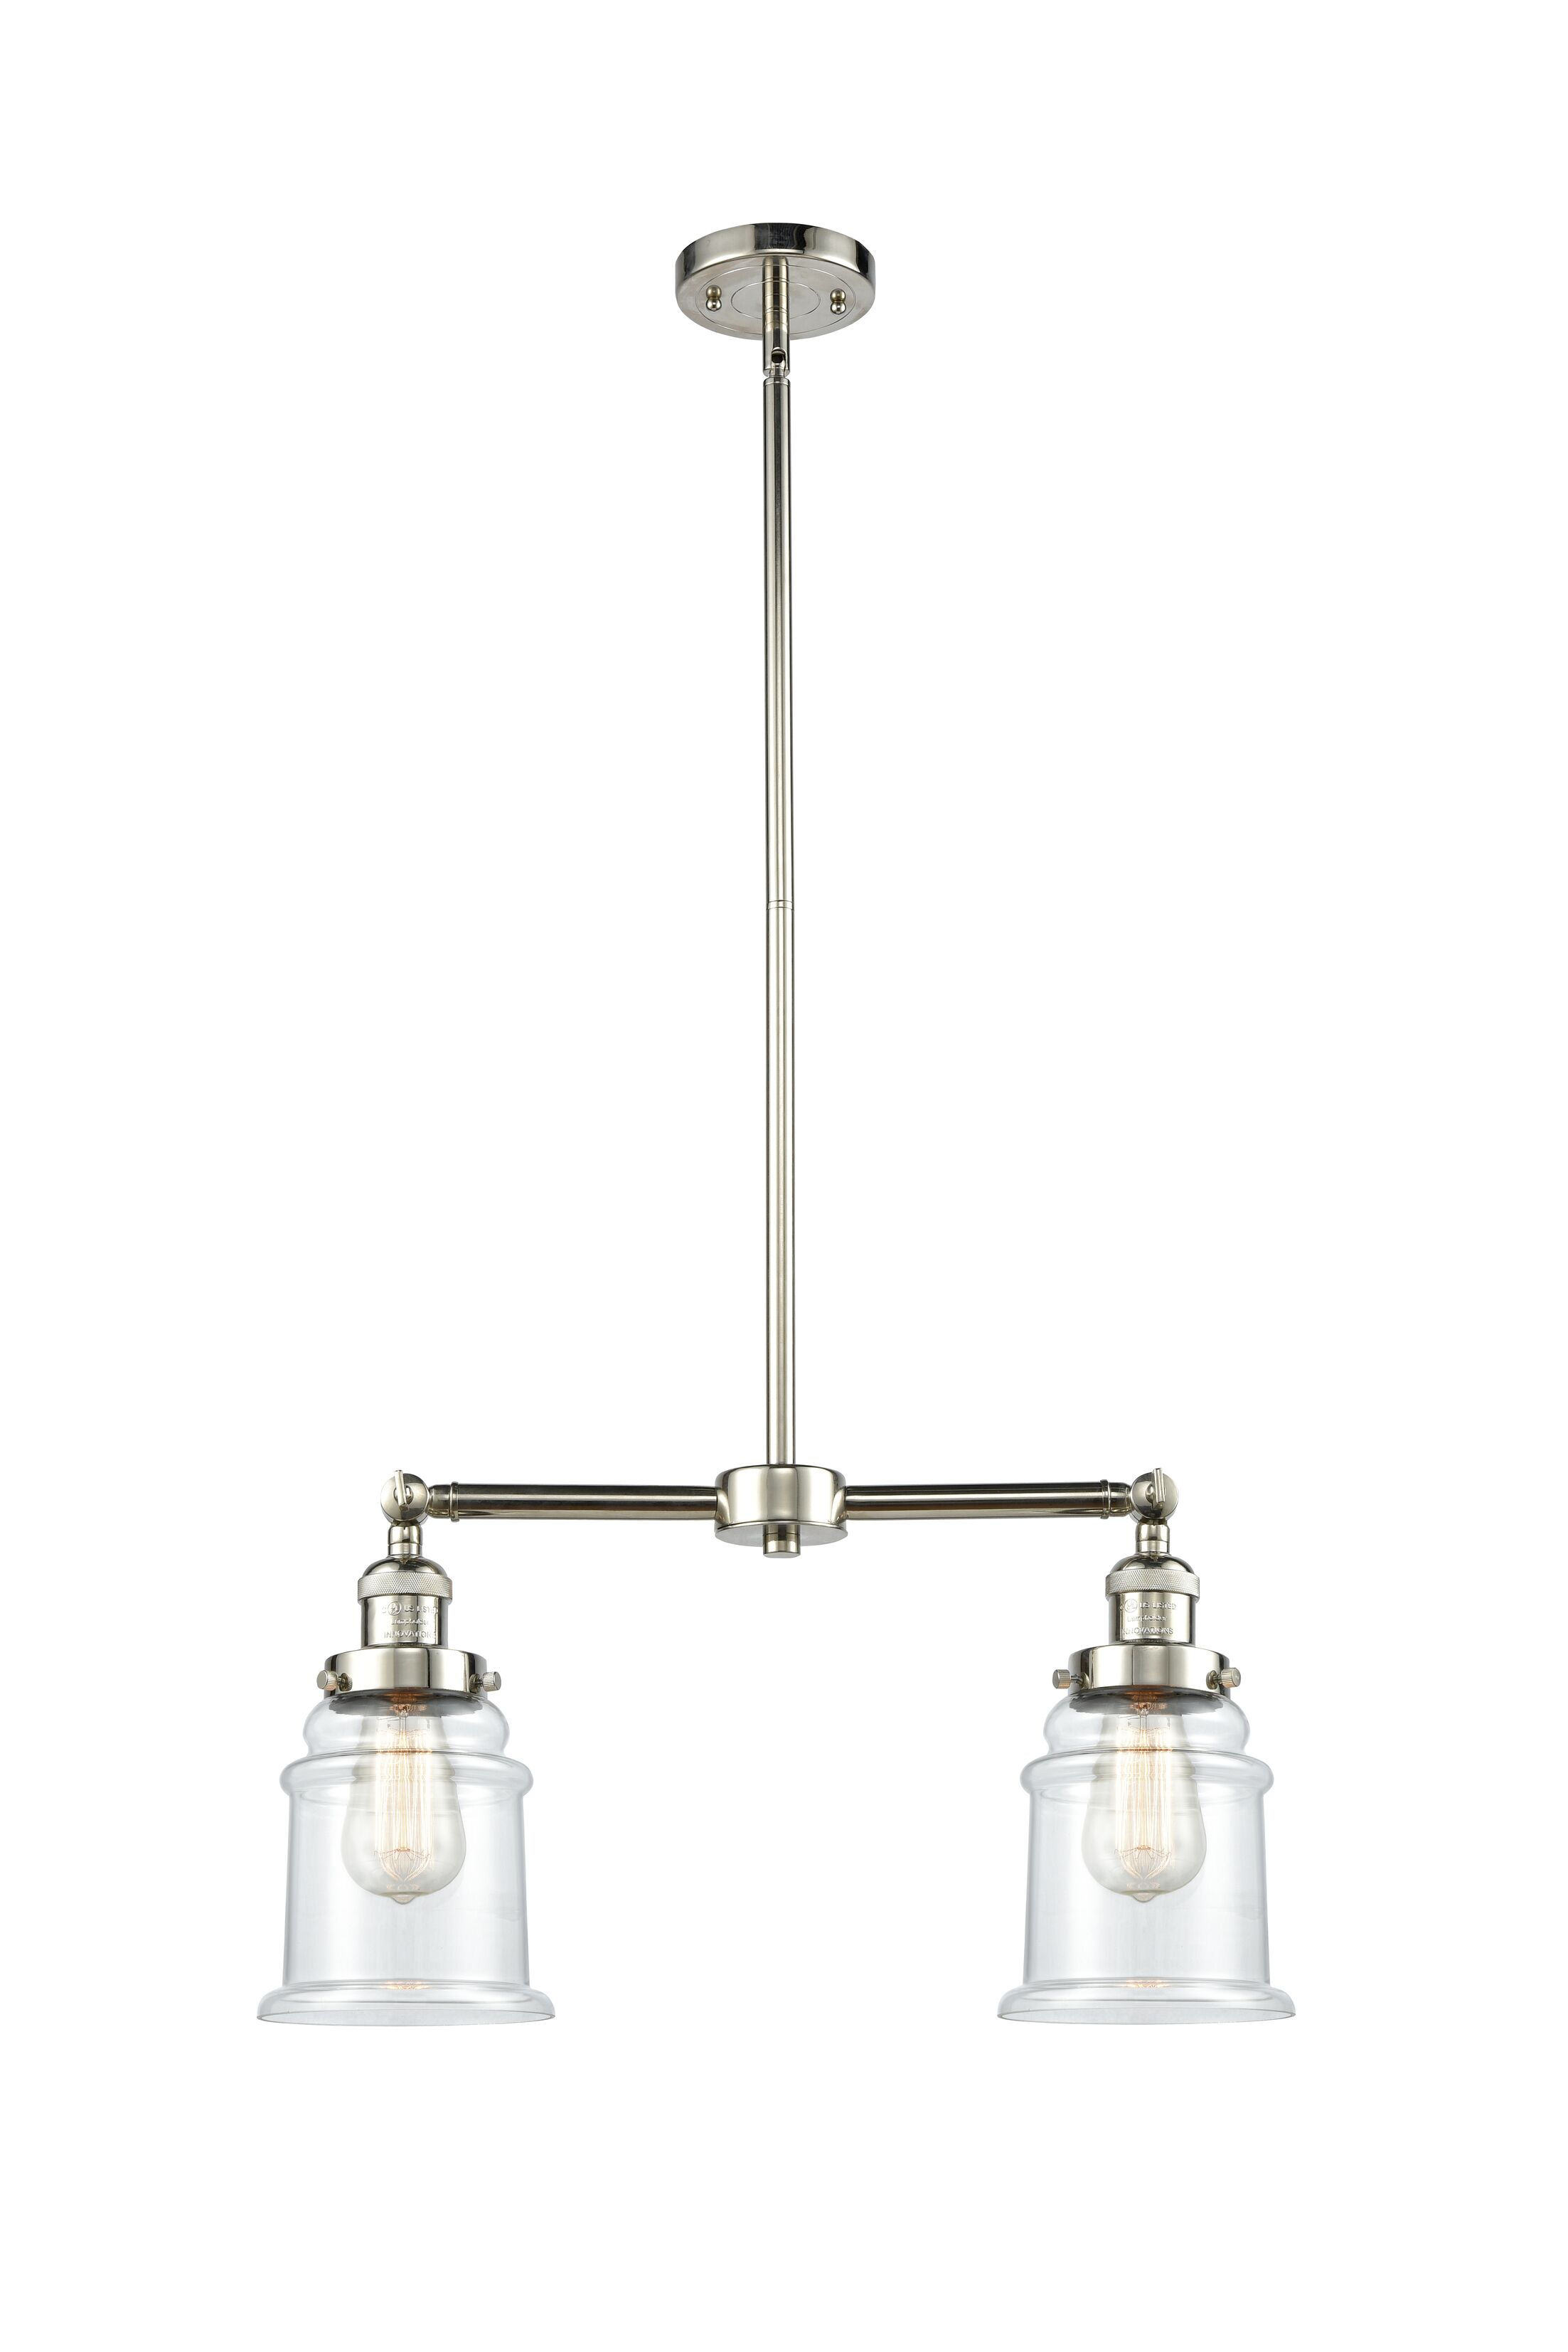 Pendant lights greeley 2 light kitchen island pendant